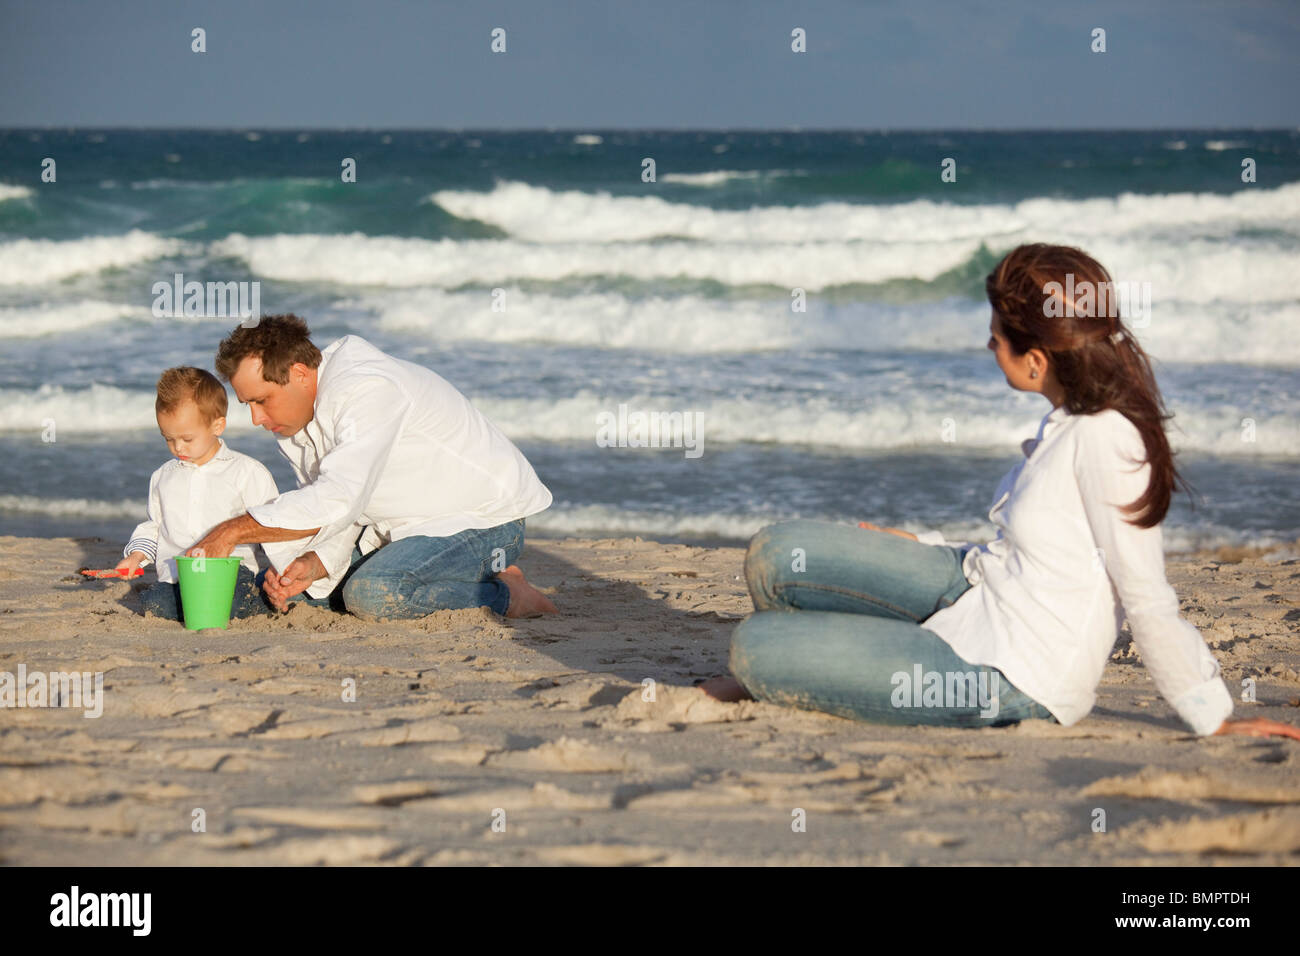 Fort Lauderdale, Florida, United States Of America; A Father And Son Play In The Sand On The Beach While The Mother - Stock Image